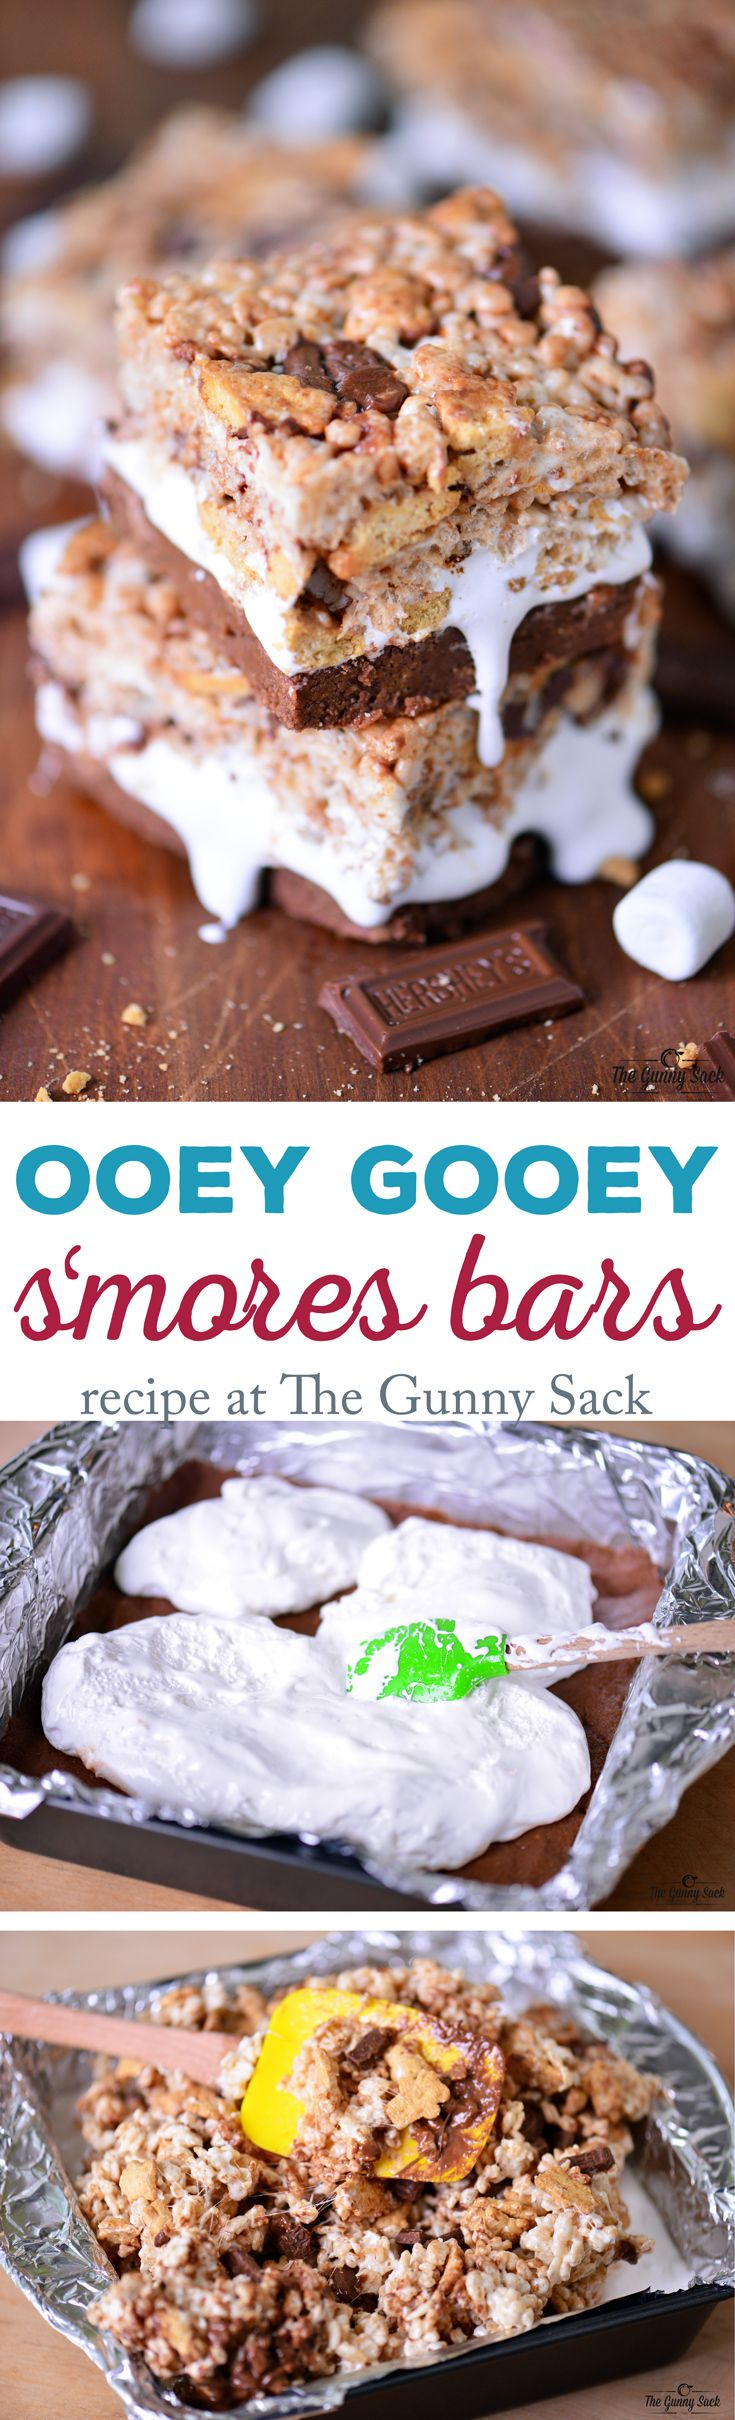 This no bake Ooey Gooey S'mores Bars recipe has a graham cracker and Nutella base, S'mores Rice Krispies on the top and marshmallow cream in the middle!